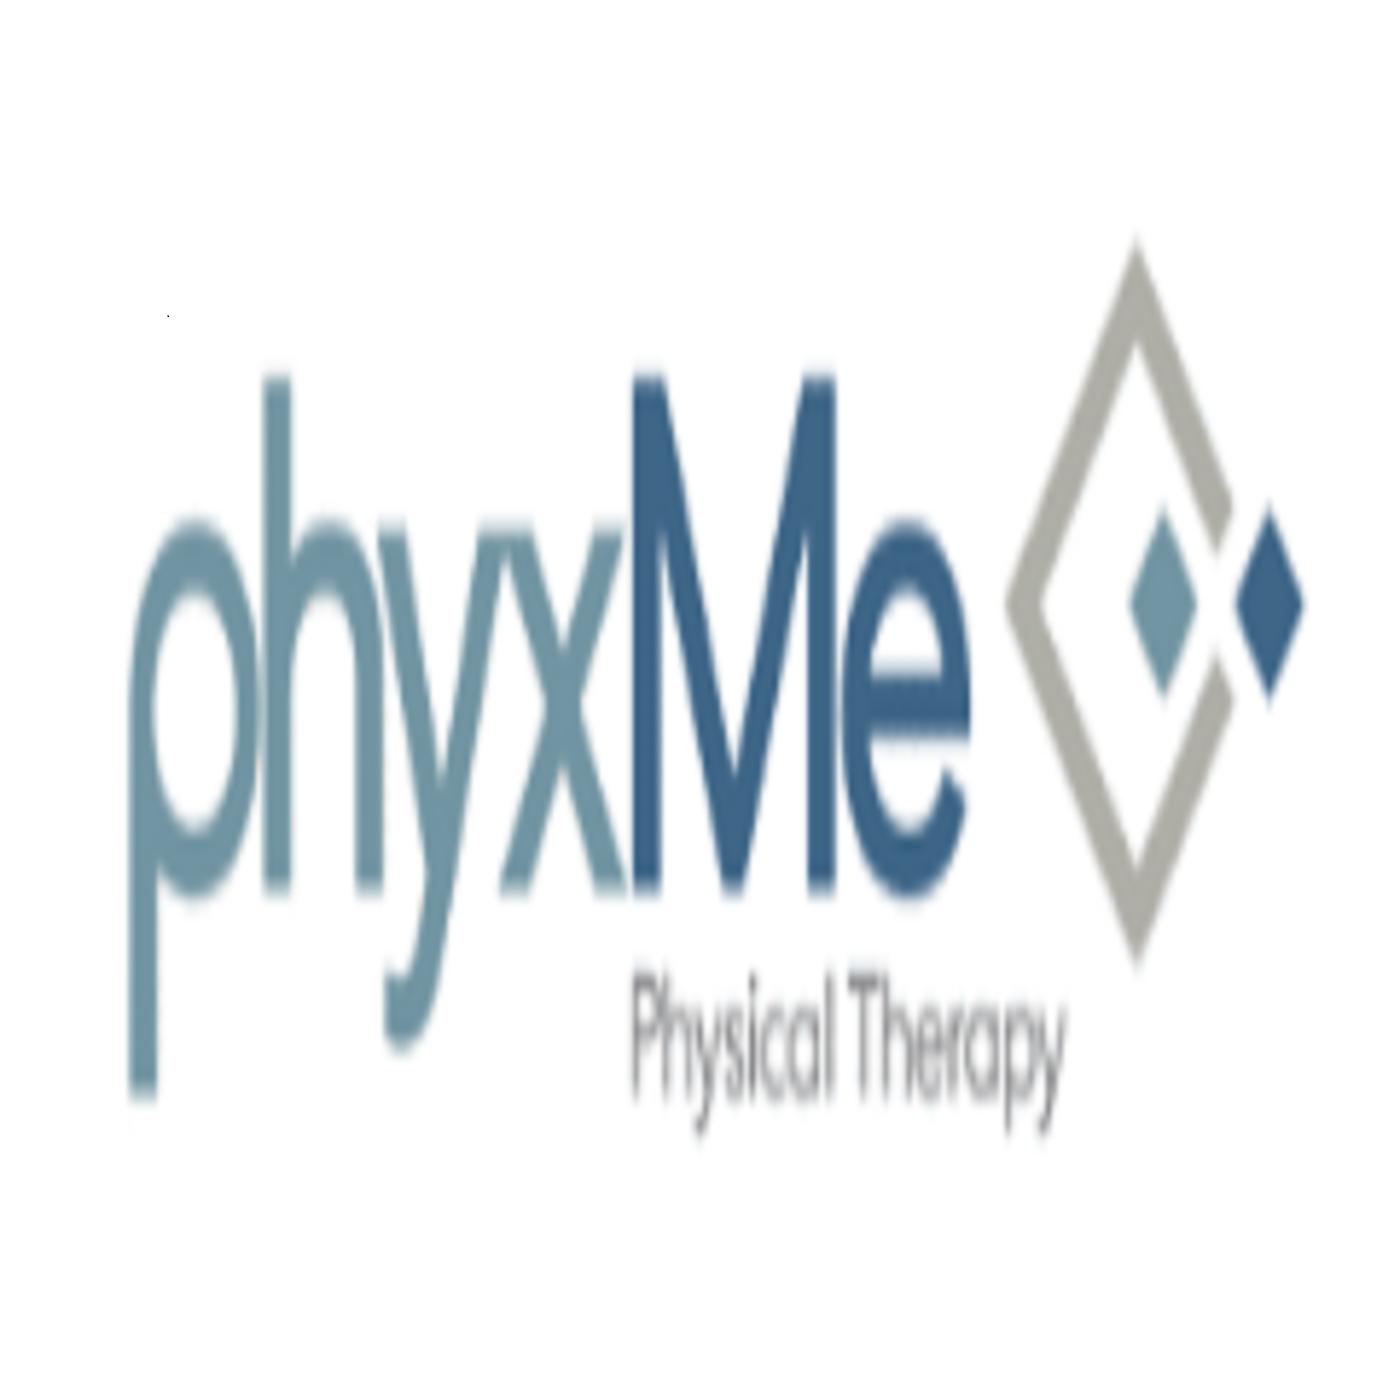 phyxMe Physical Therapy